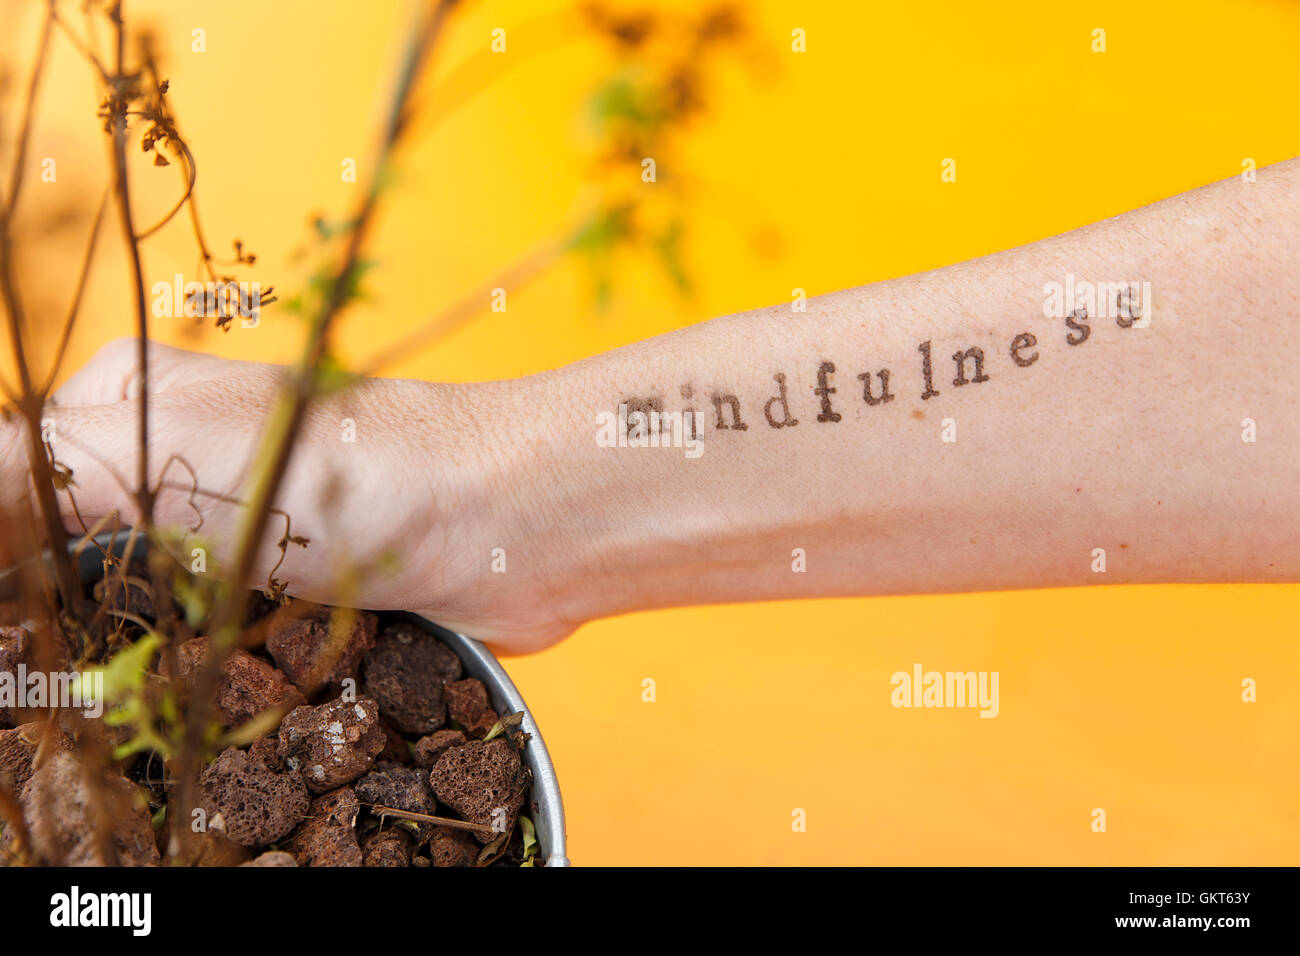 nature and mindfulness II - Stock Image